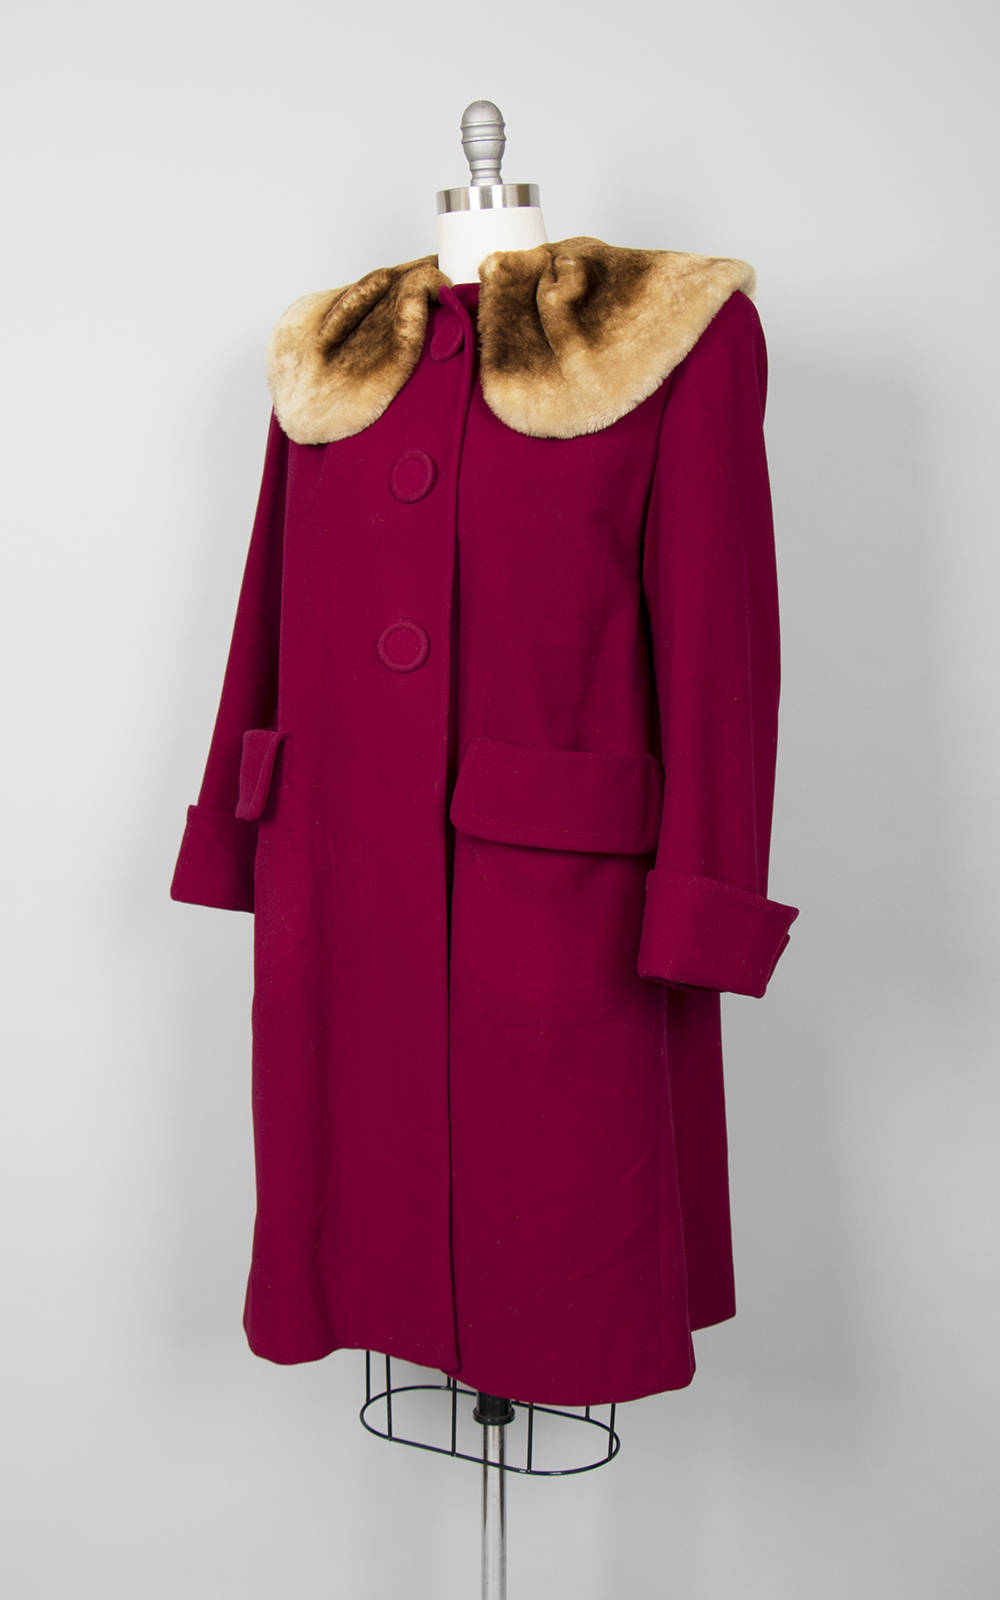 Vintage 1940s Coat | 40s Wool Mouton Lamb Fur Collar Plum Burgundy Warm Winter Swing Coat (medium/large)